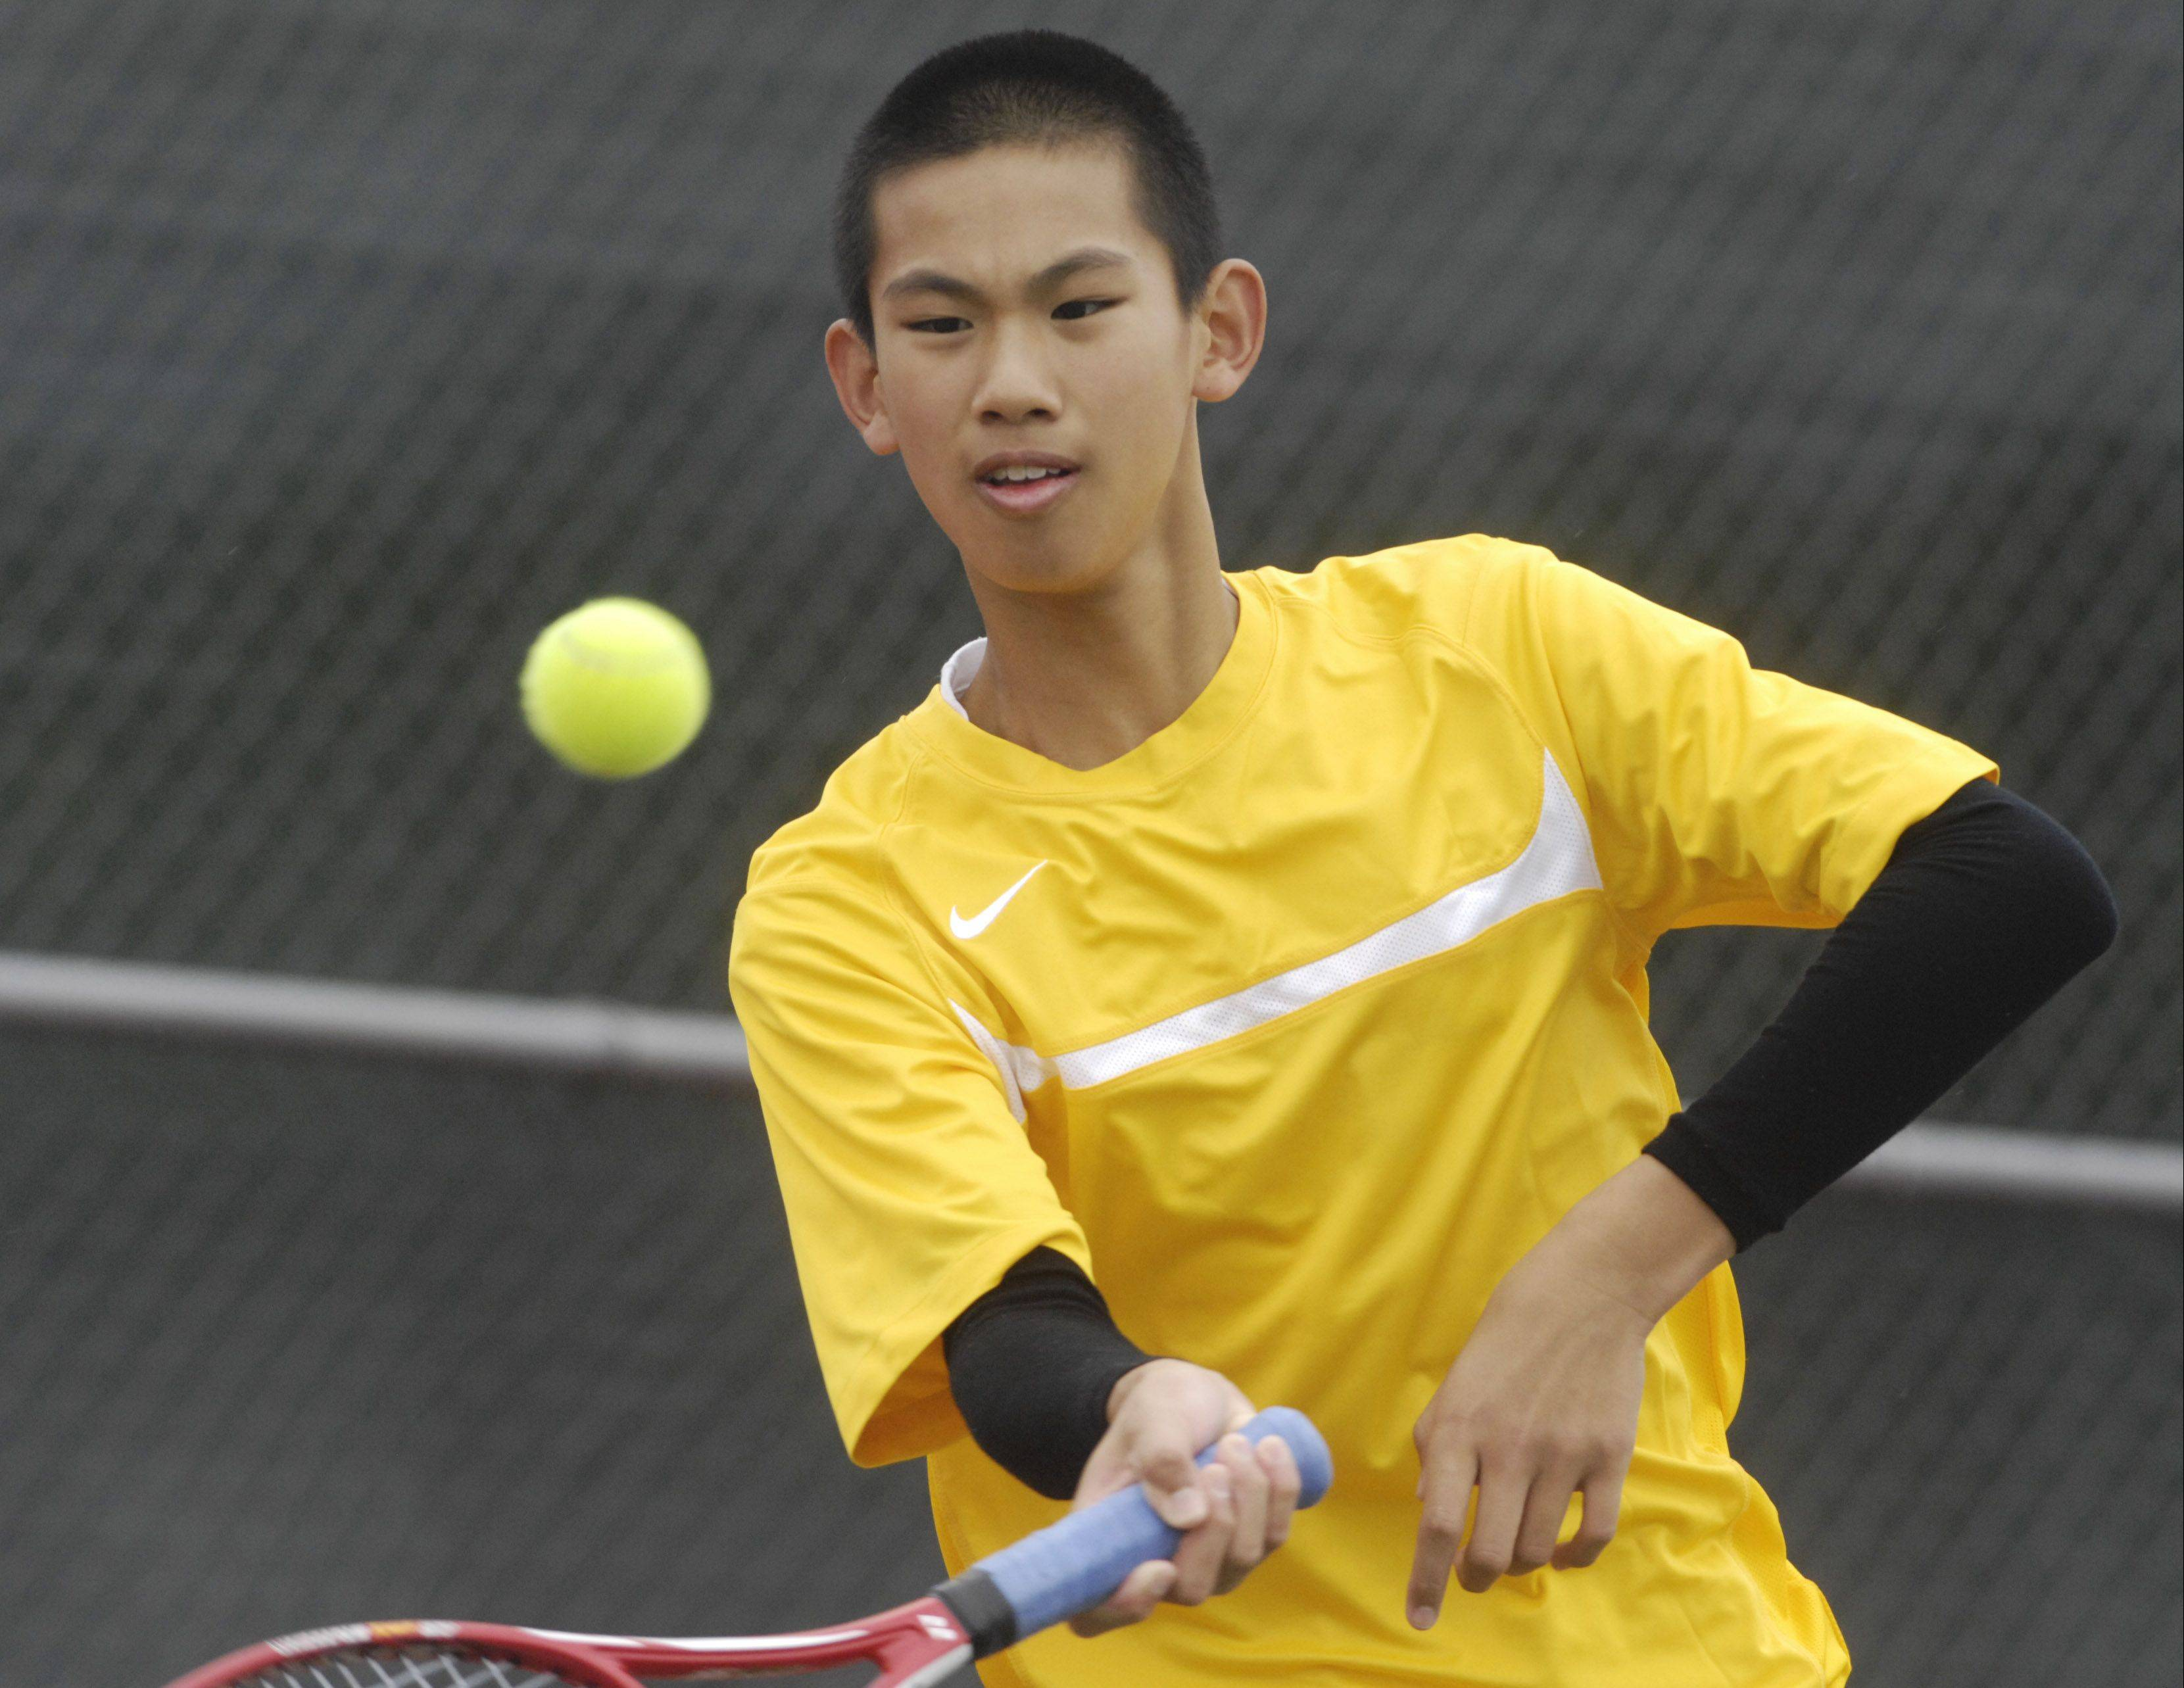 Schaumburg's Vincent Lin, here on his way to winning a Mid-Suburban League title as a freshman, could net a top 5-8 state seed later this spring.